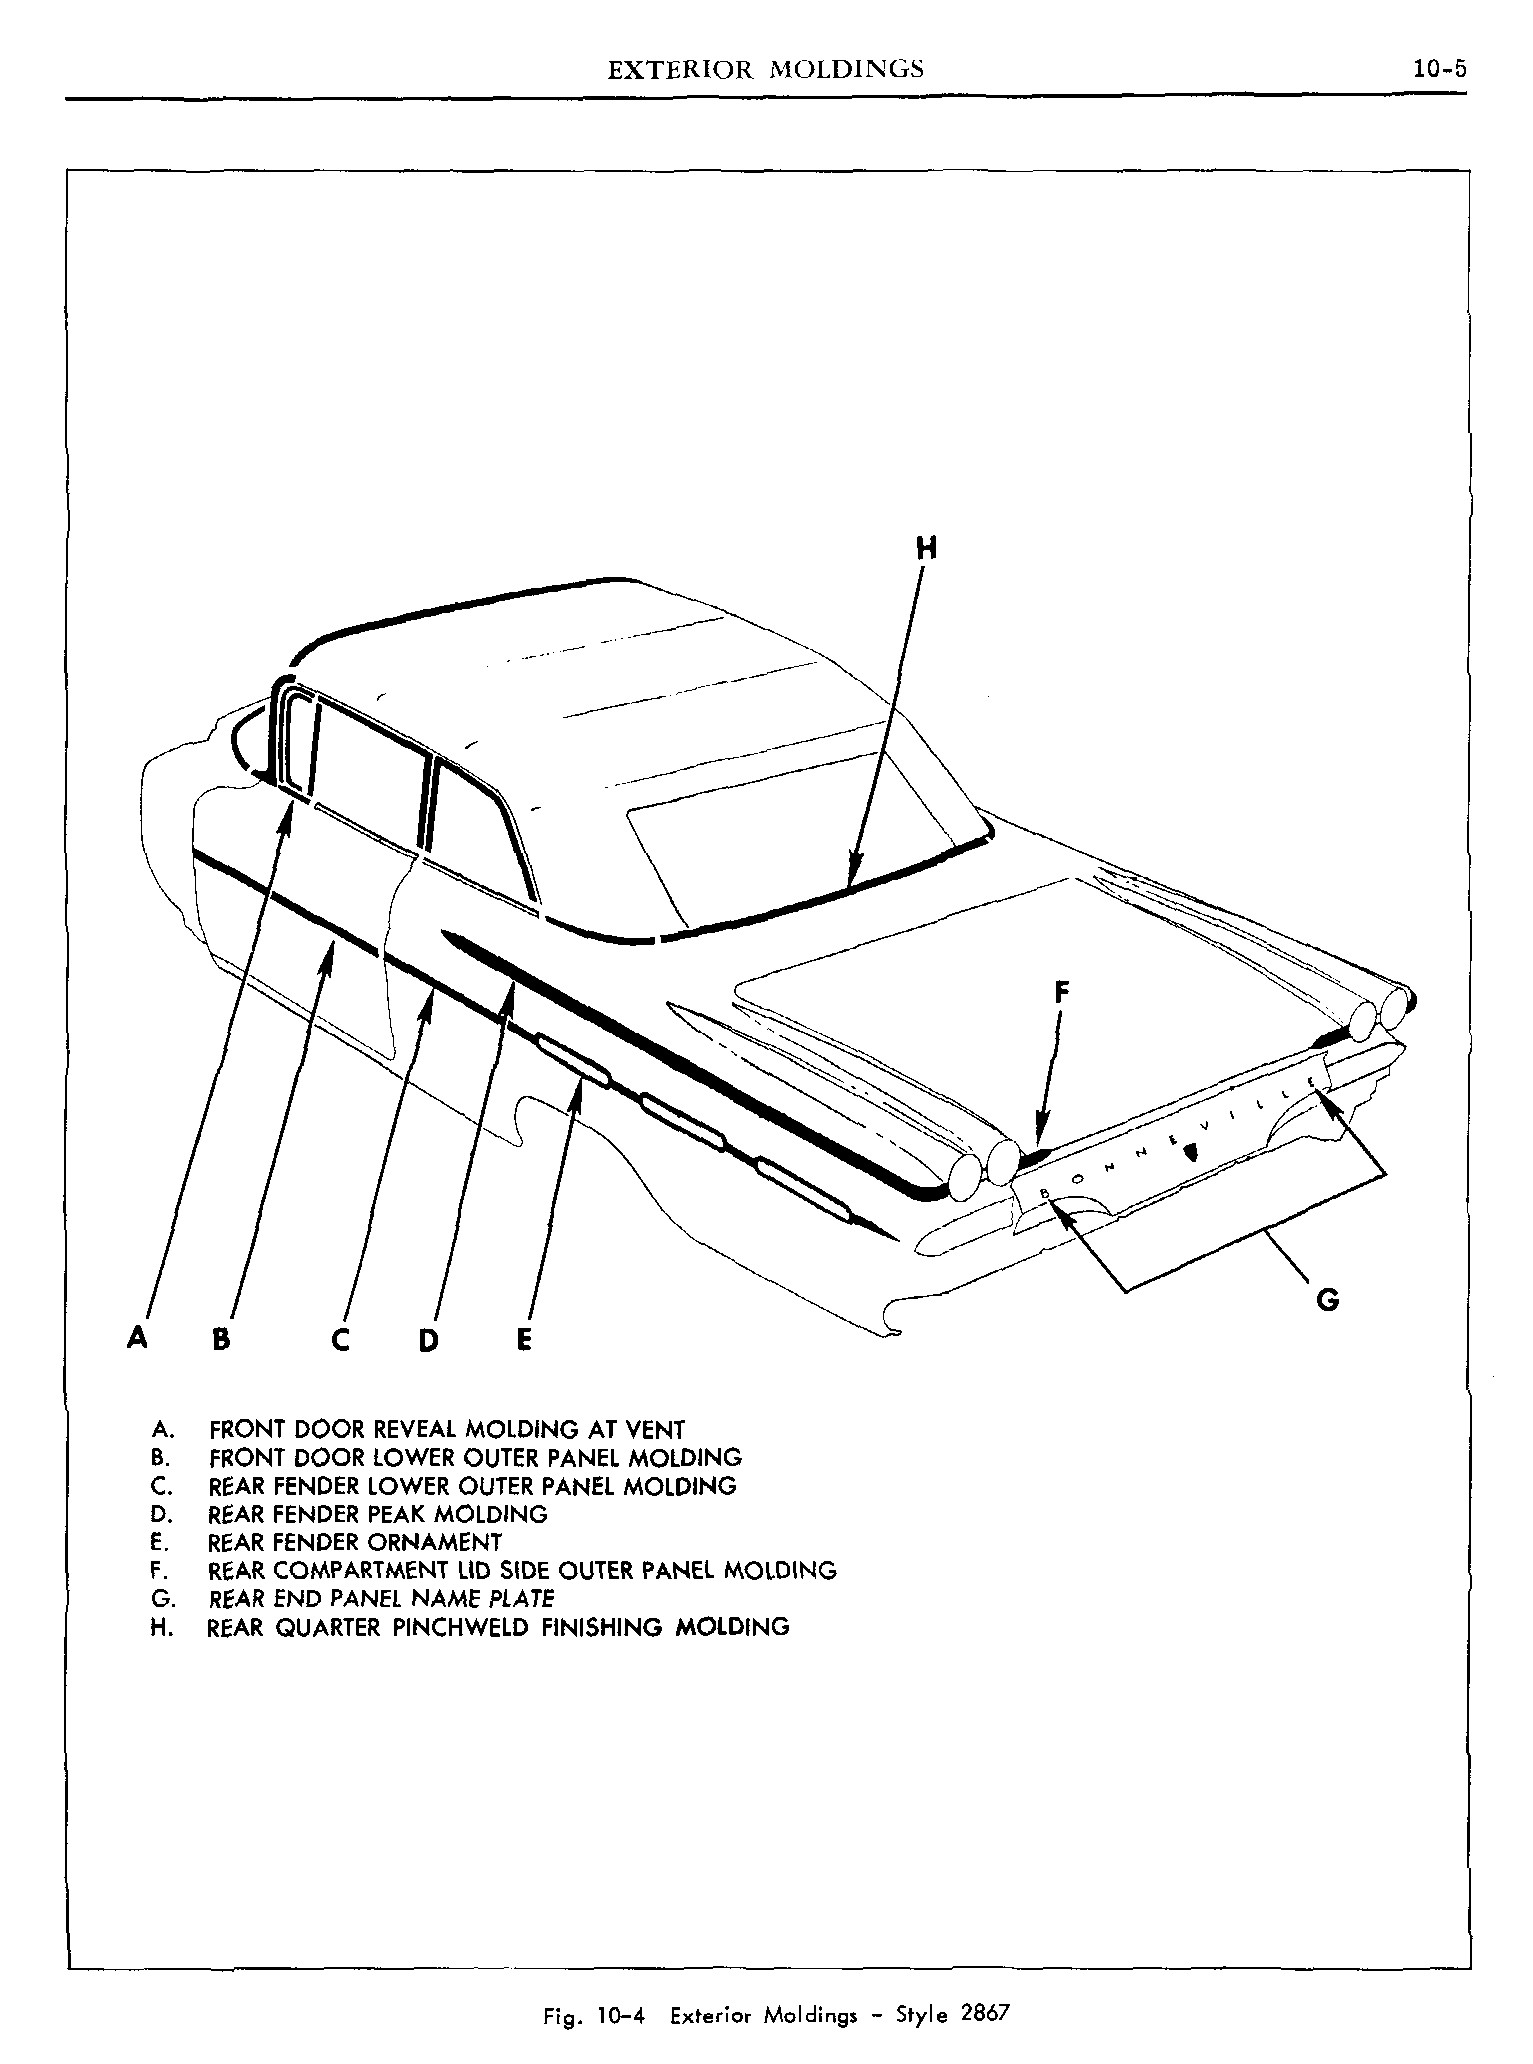 1960 Pontiac Shop Manual- Ext Moldings Page 5 of 10